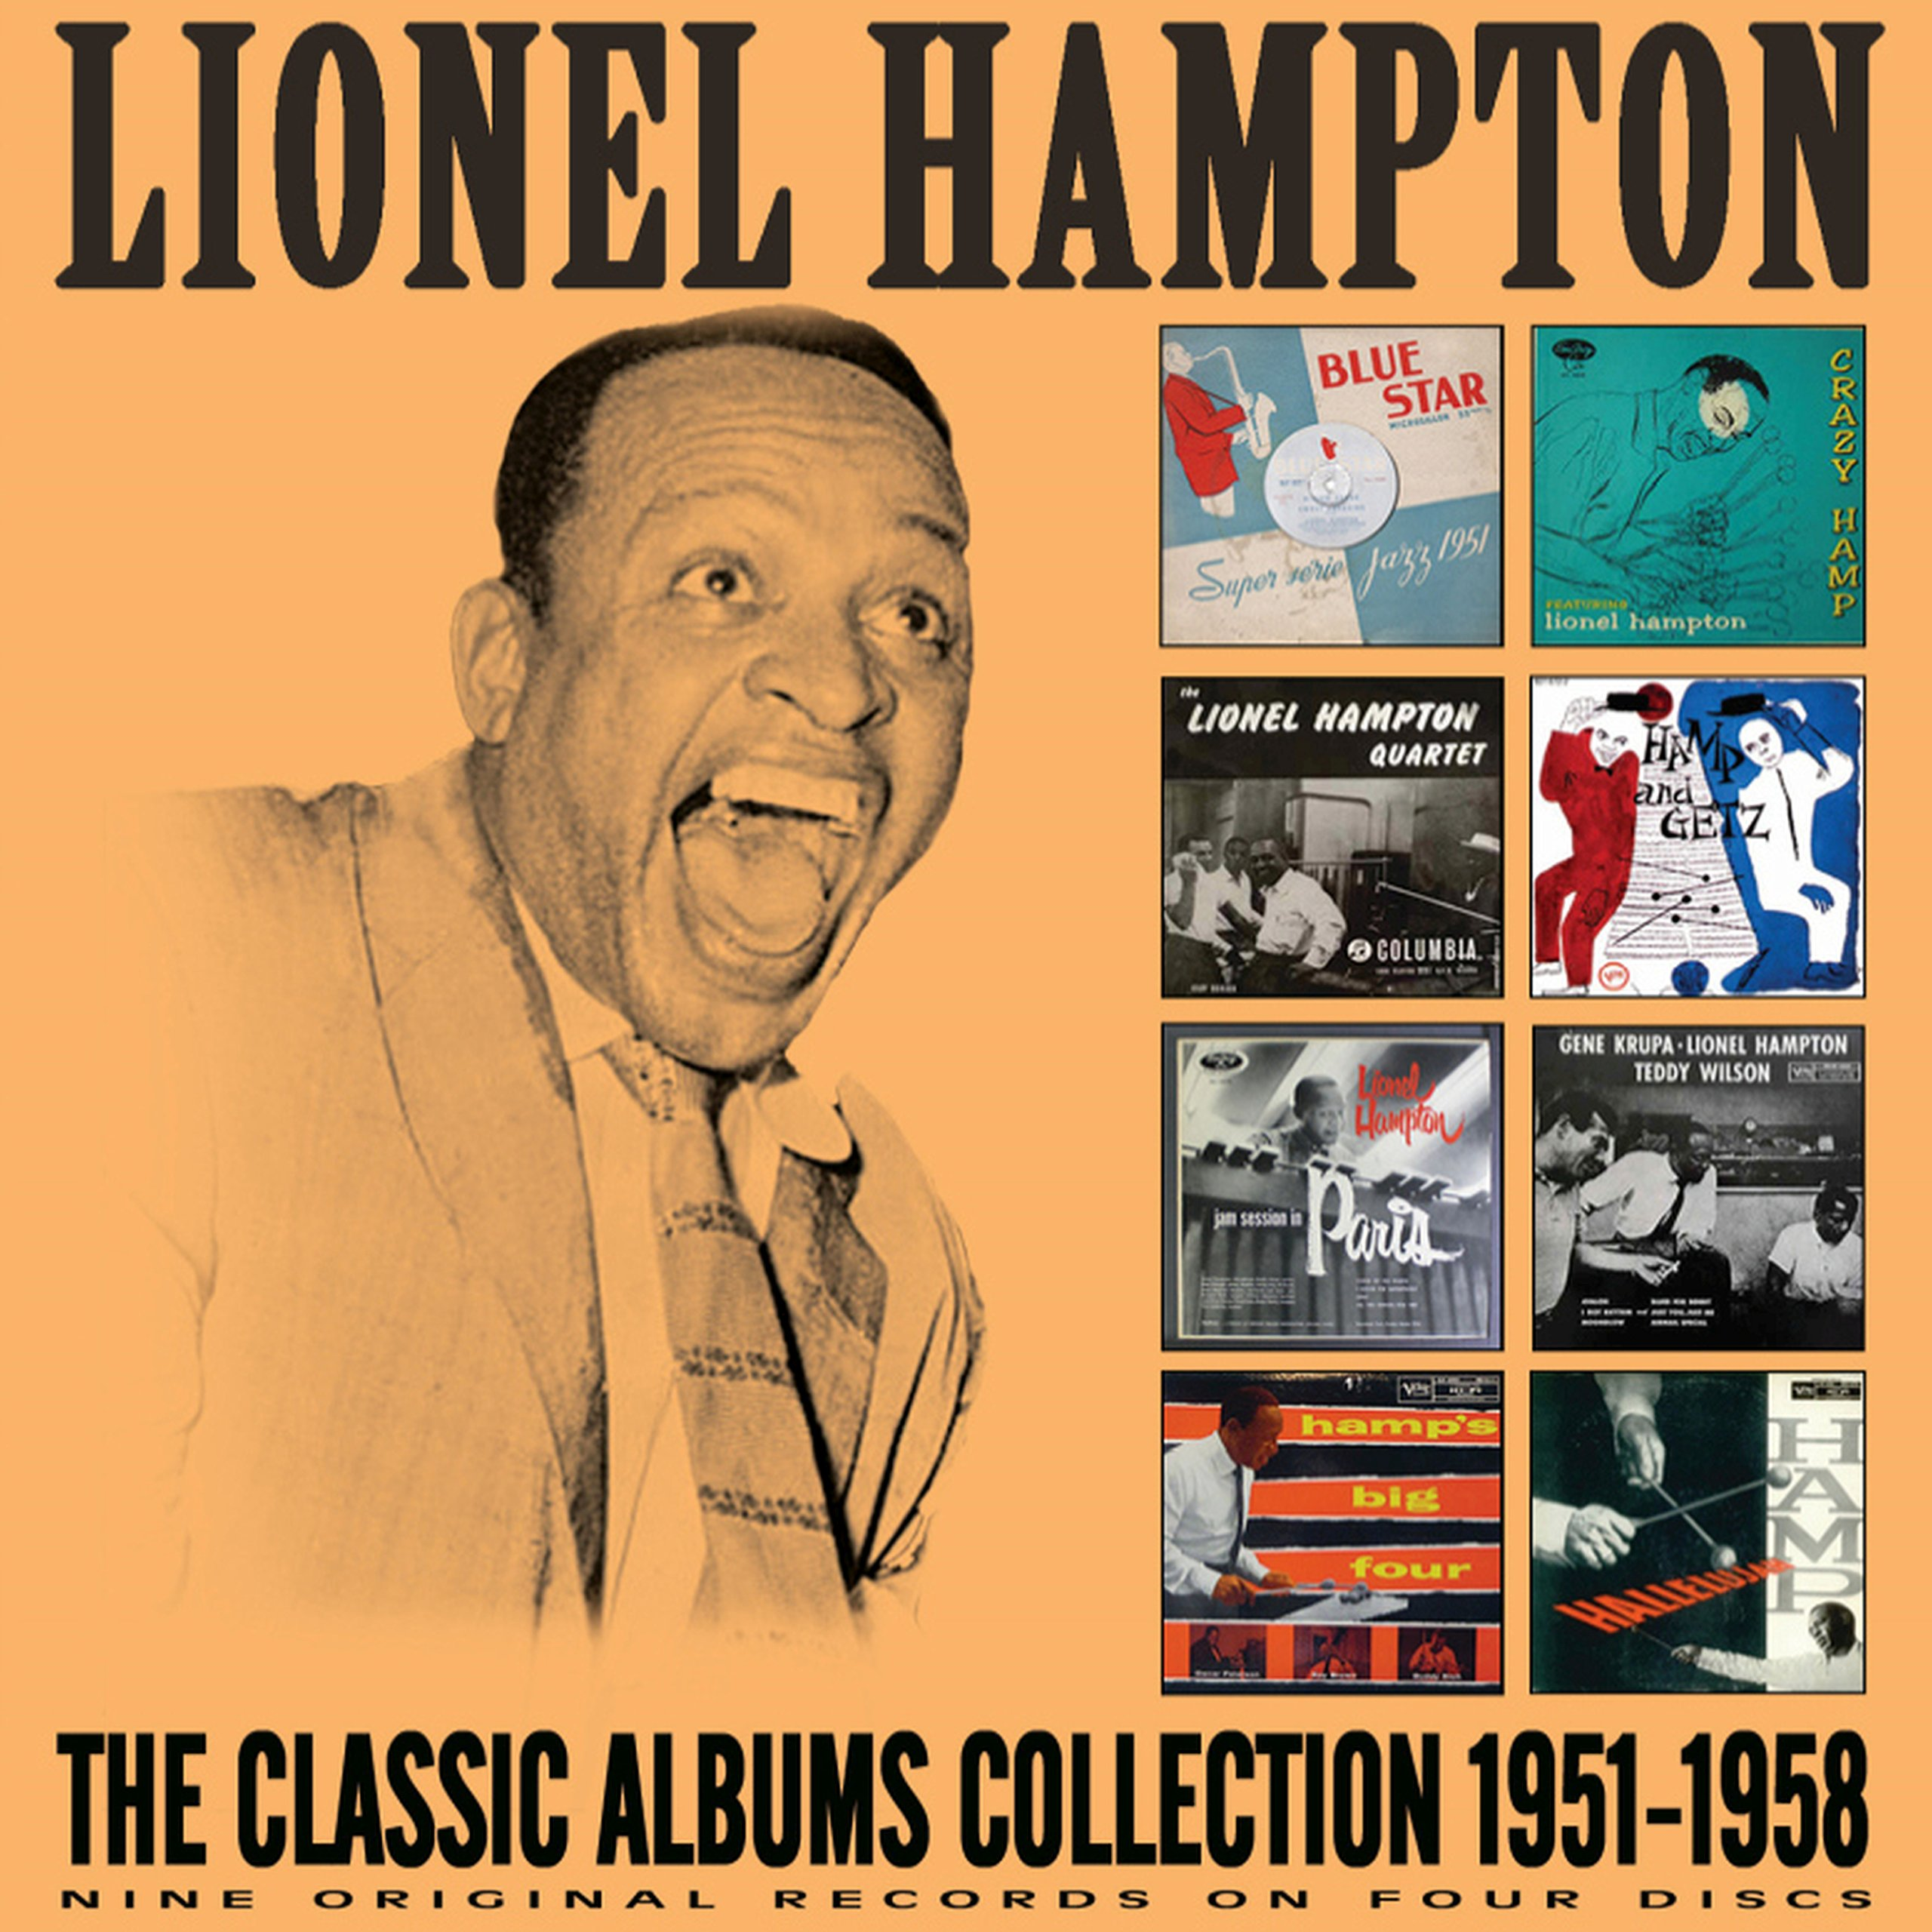 CD : Lionel Hampton - Complete Albums Collection: 1951-1958 (4PC)